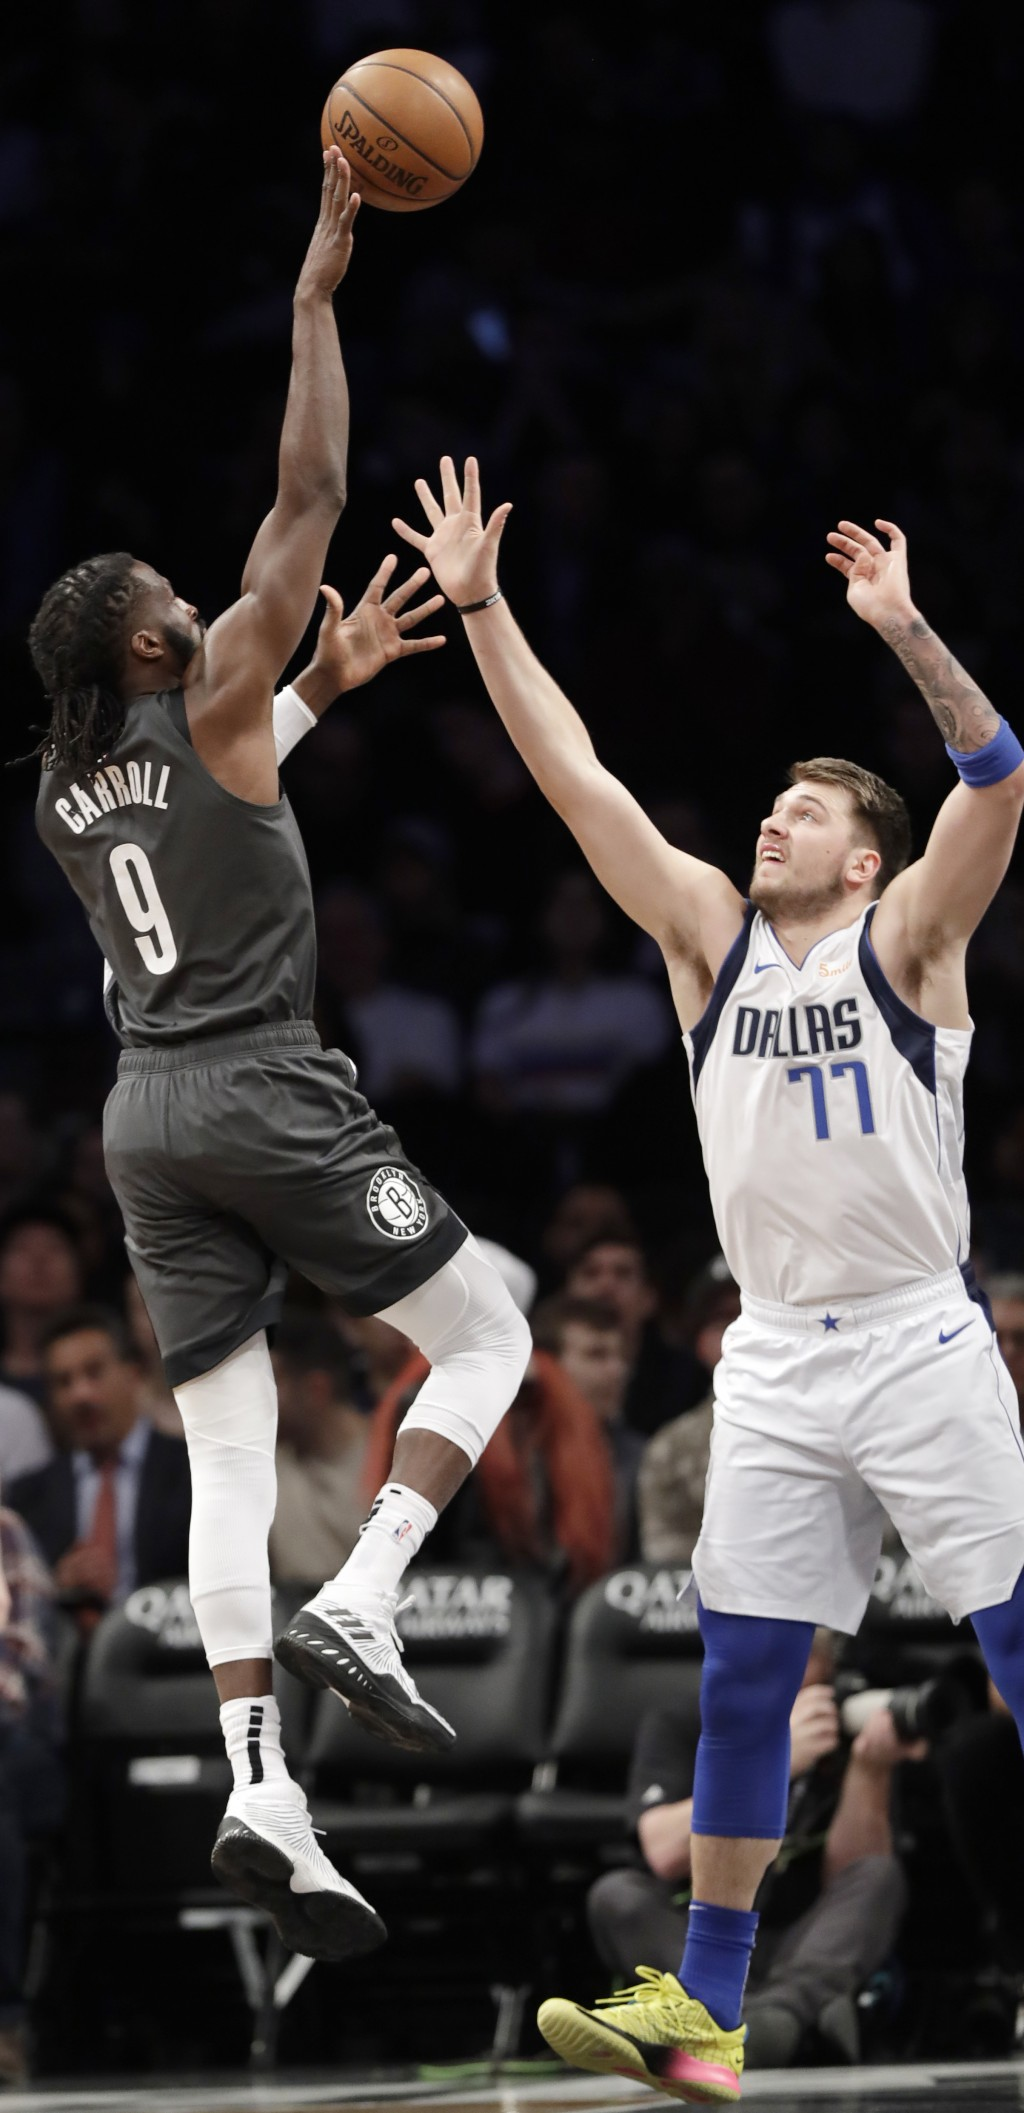 Brooklyn Nets forward DeMarre Carroll (9) shoots a three-point basket with Dallas Mavericks forward Luka Doncic (77) defending against him during the